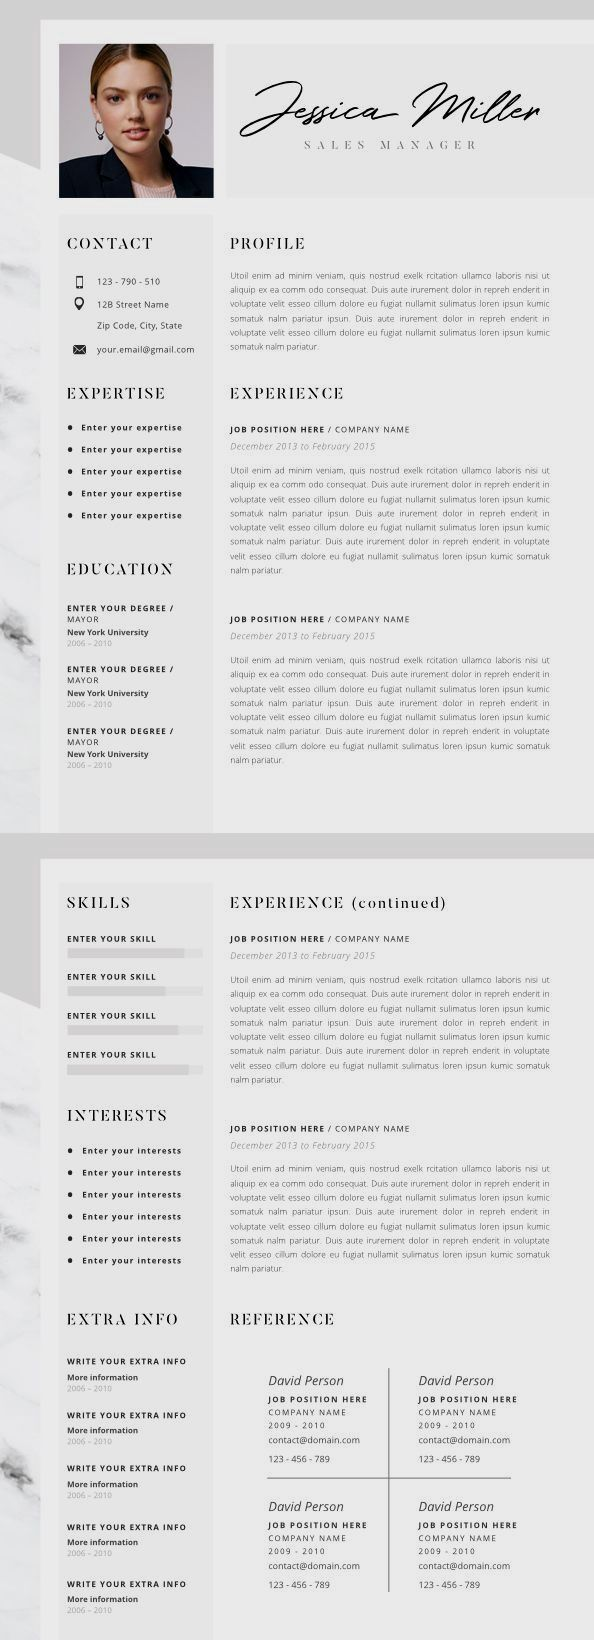 Pin By Nicolette Tetrault On Resume Design Template Resume Design Creative Resume Design Resume Layout